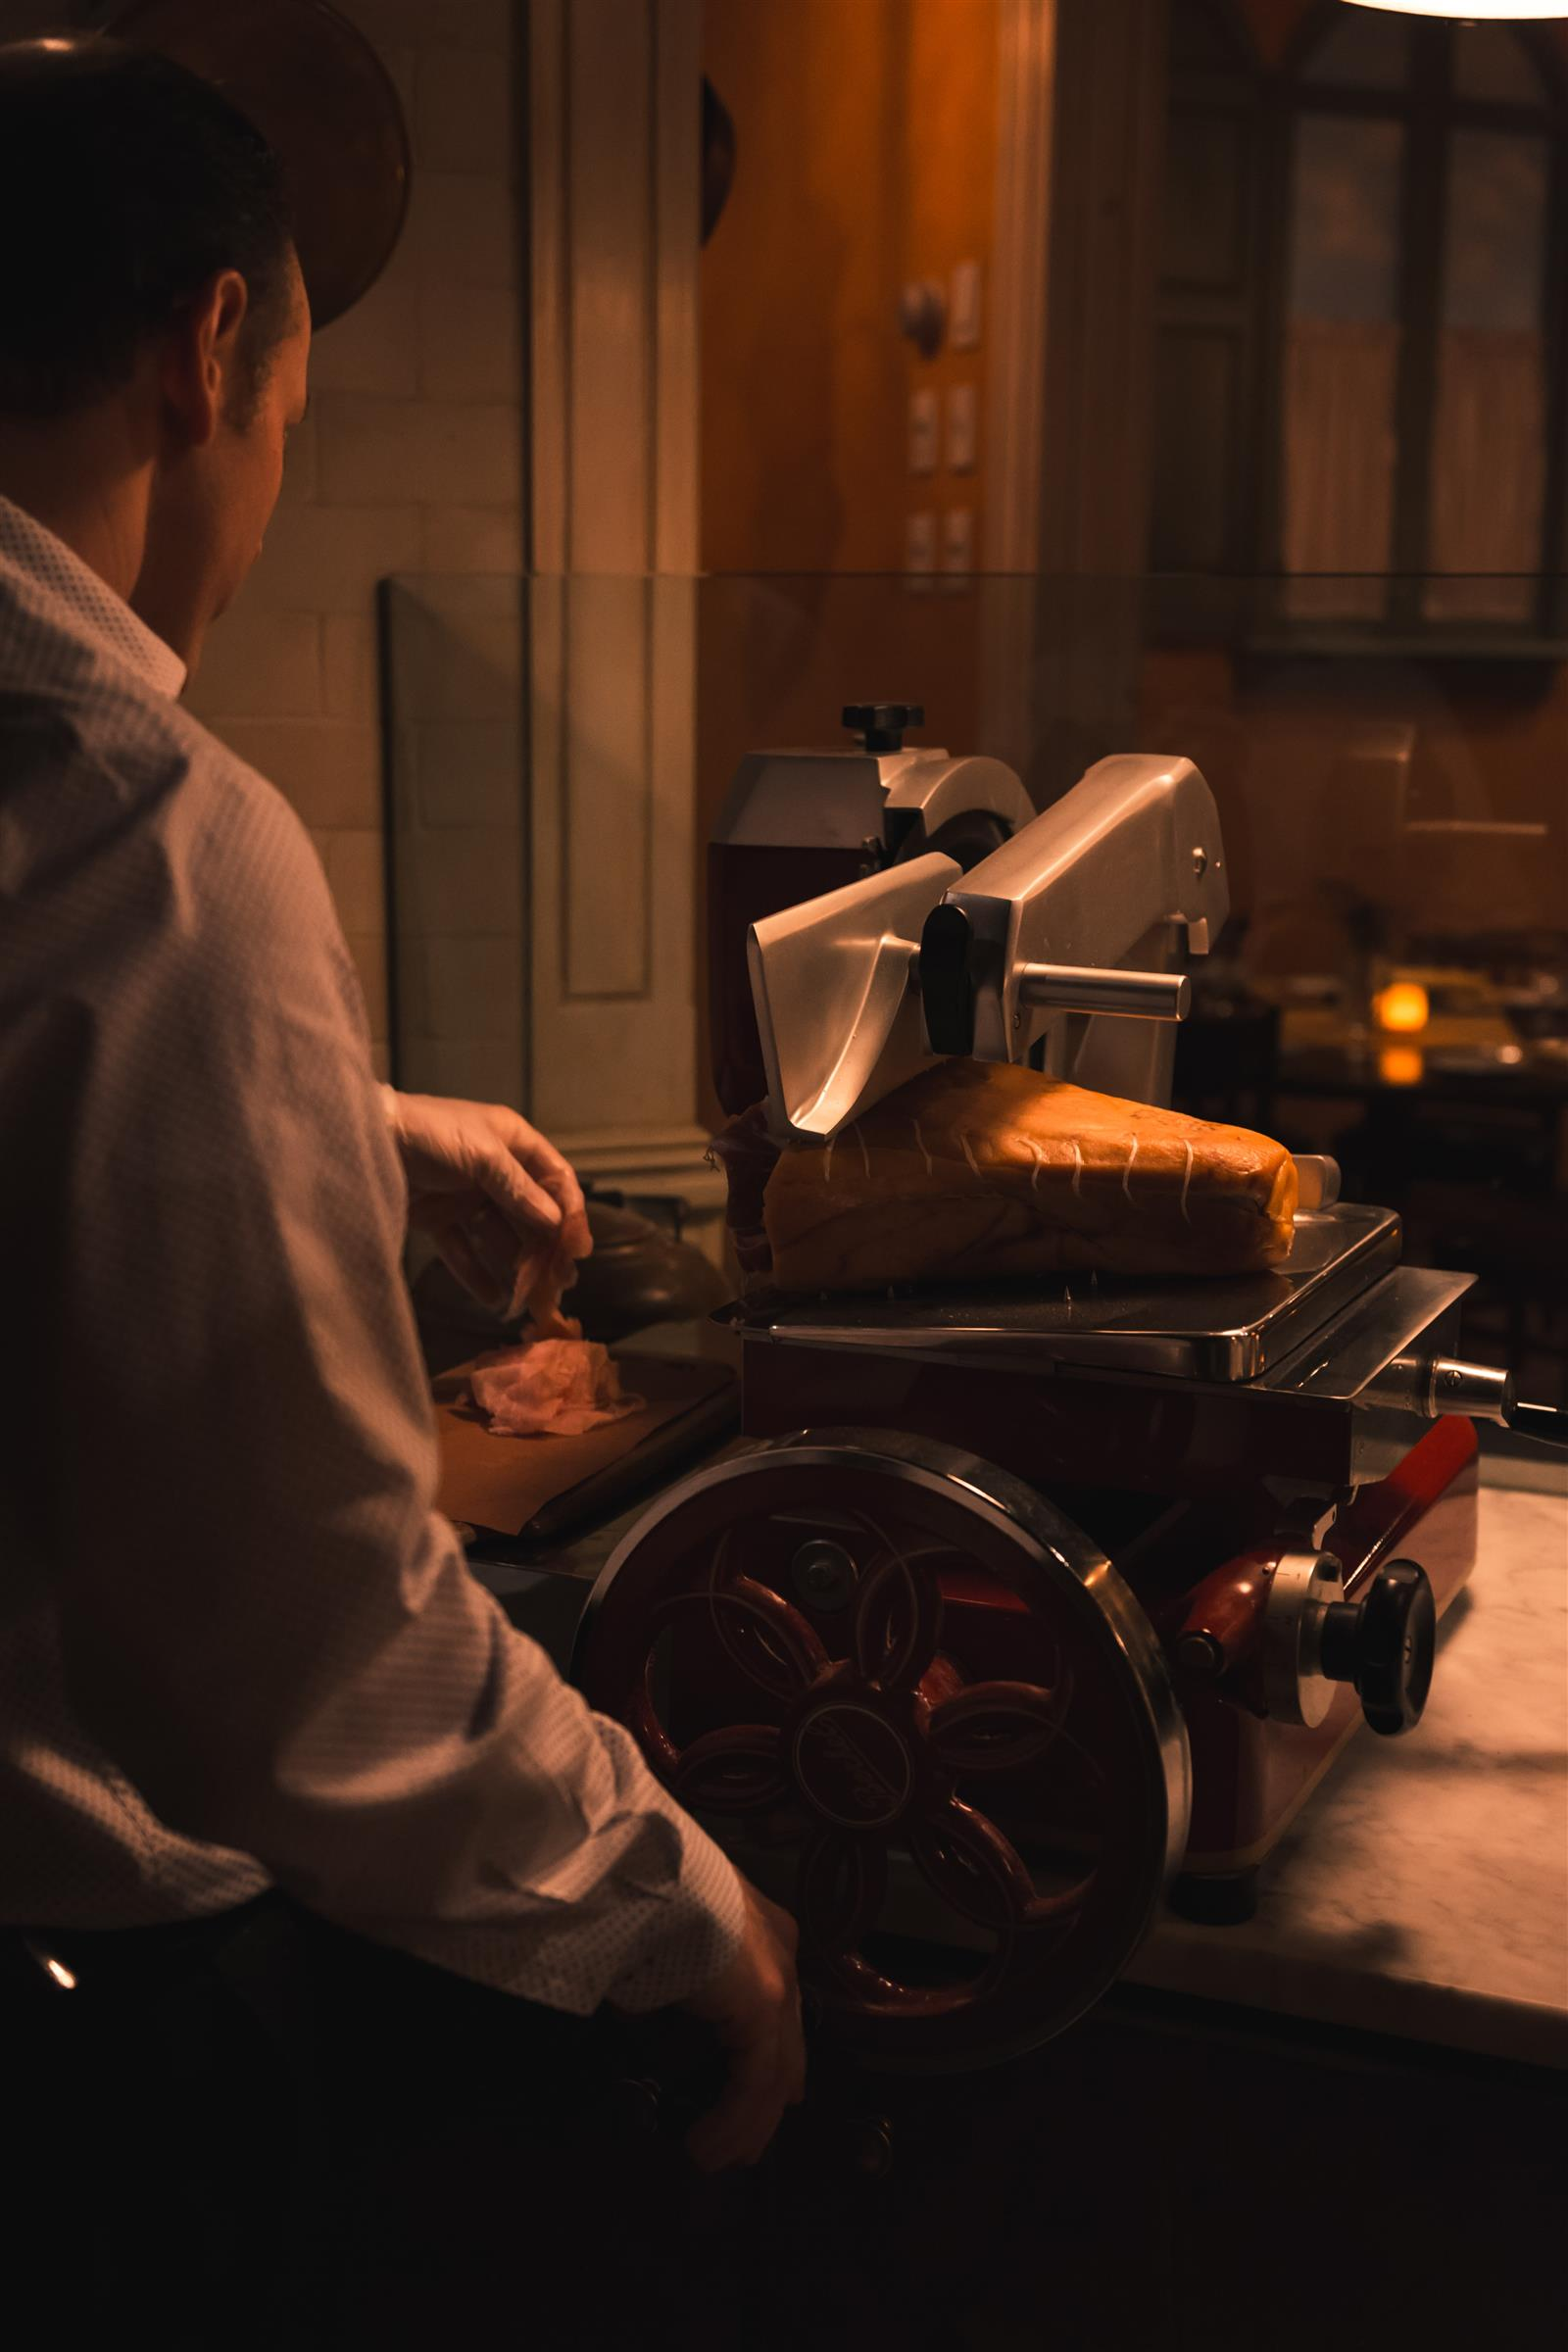 Man cutting proscuitto on old fashioned deli slicer